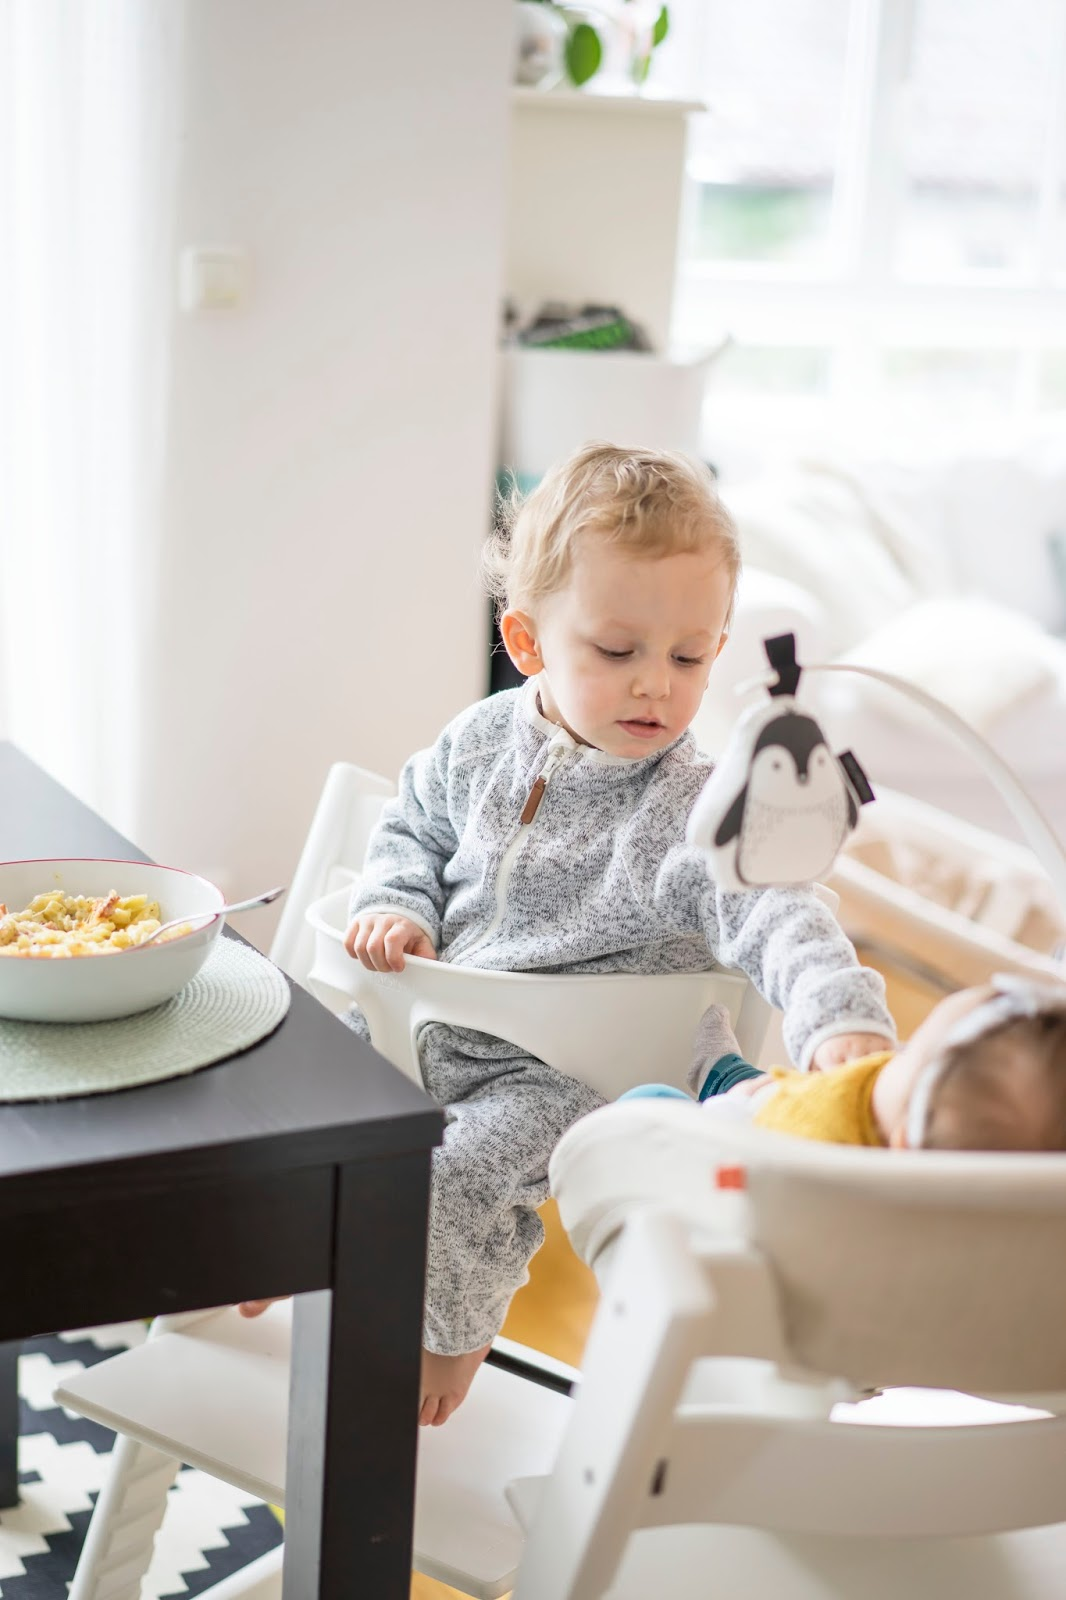 stokke tripp trapp mit newborn set die ganze familie auf augenh he an einem tisch. Black Bedroom Furniture Sets. Home Design Ideas